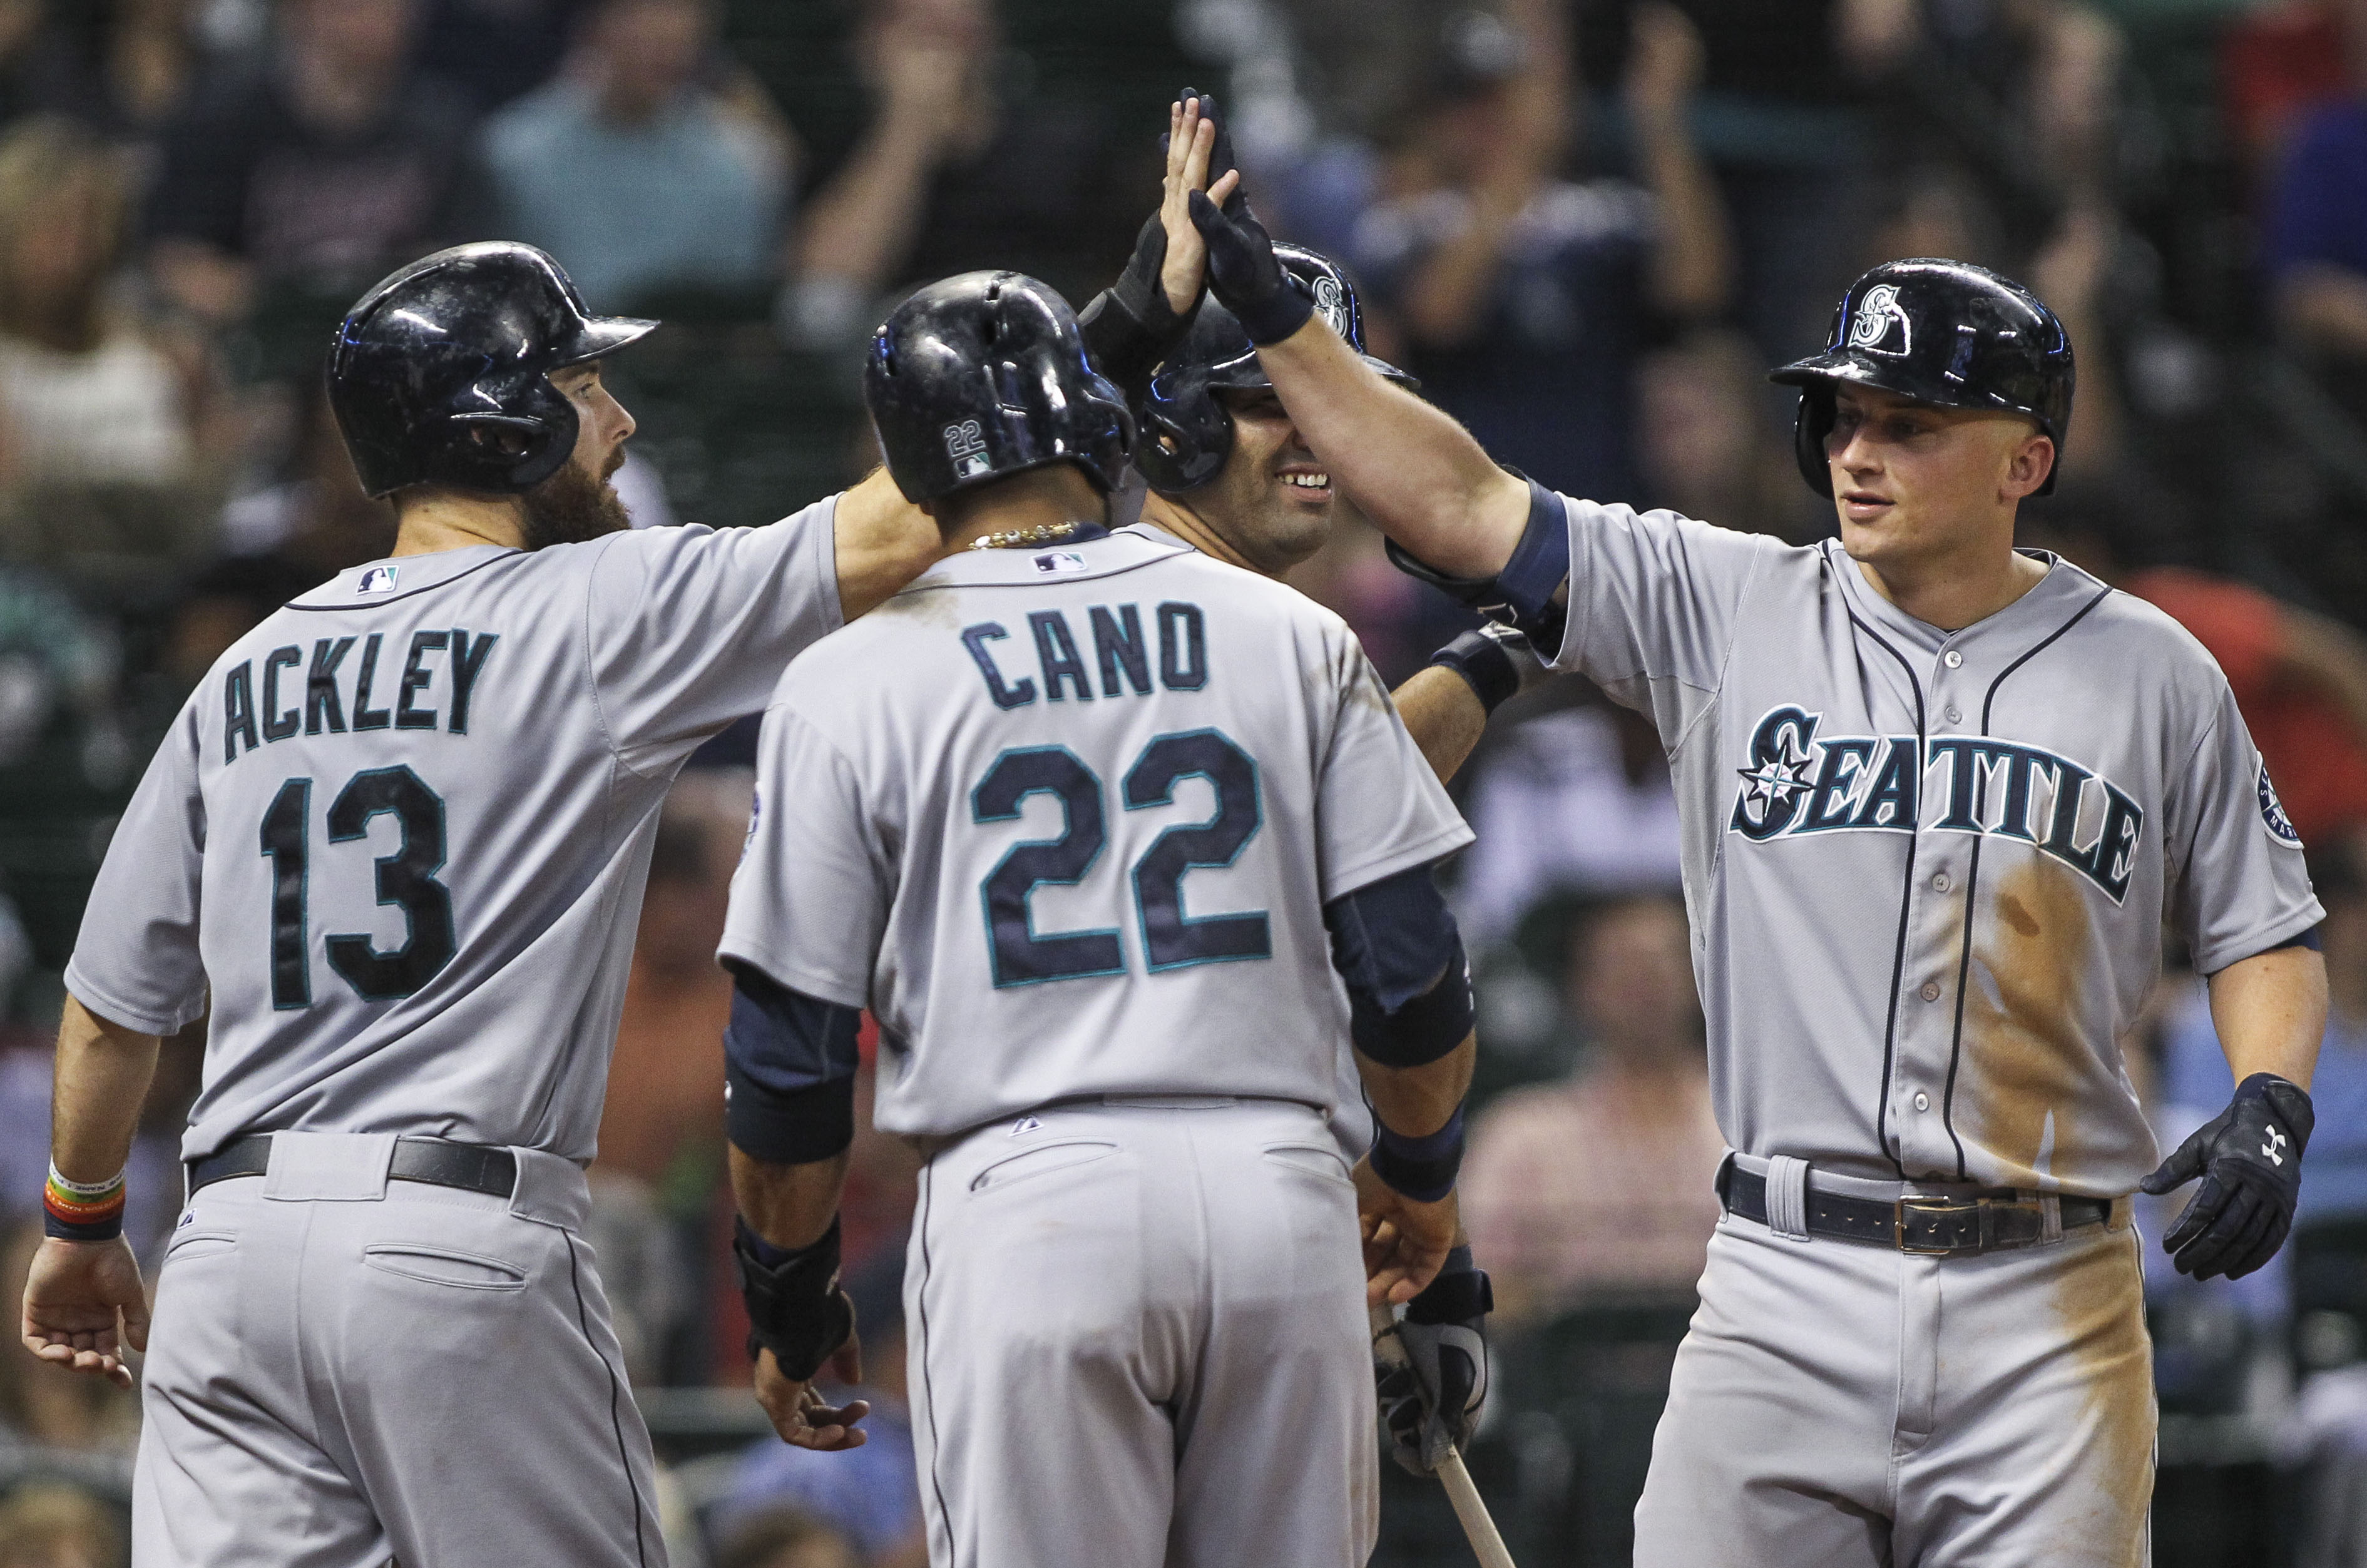 The Grand Slam: Tigers take charge in 10-1 win over Royals